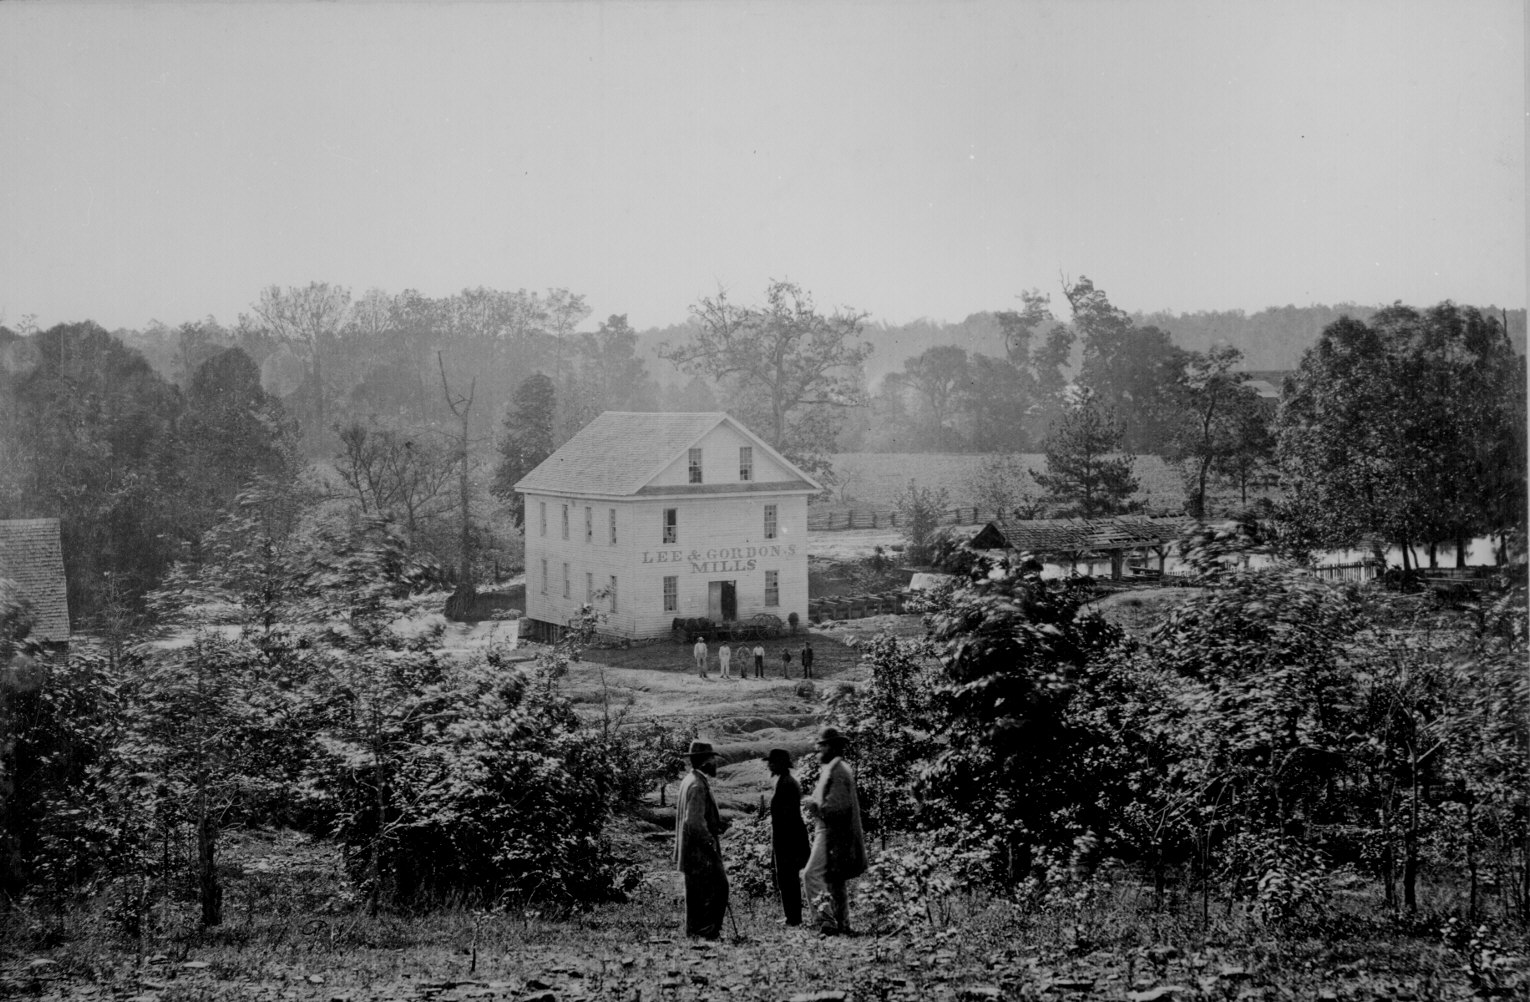 Photographs And Images Of Georgia In The Civil War